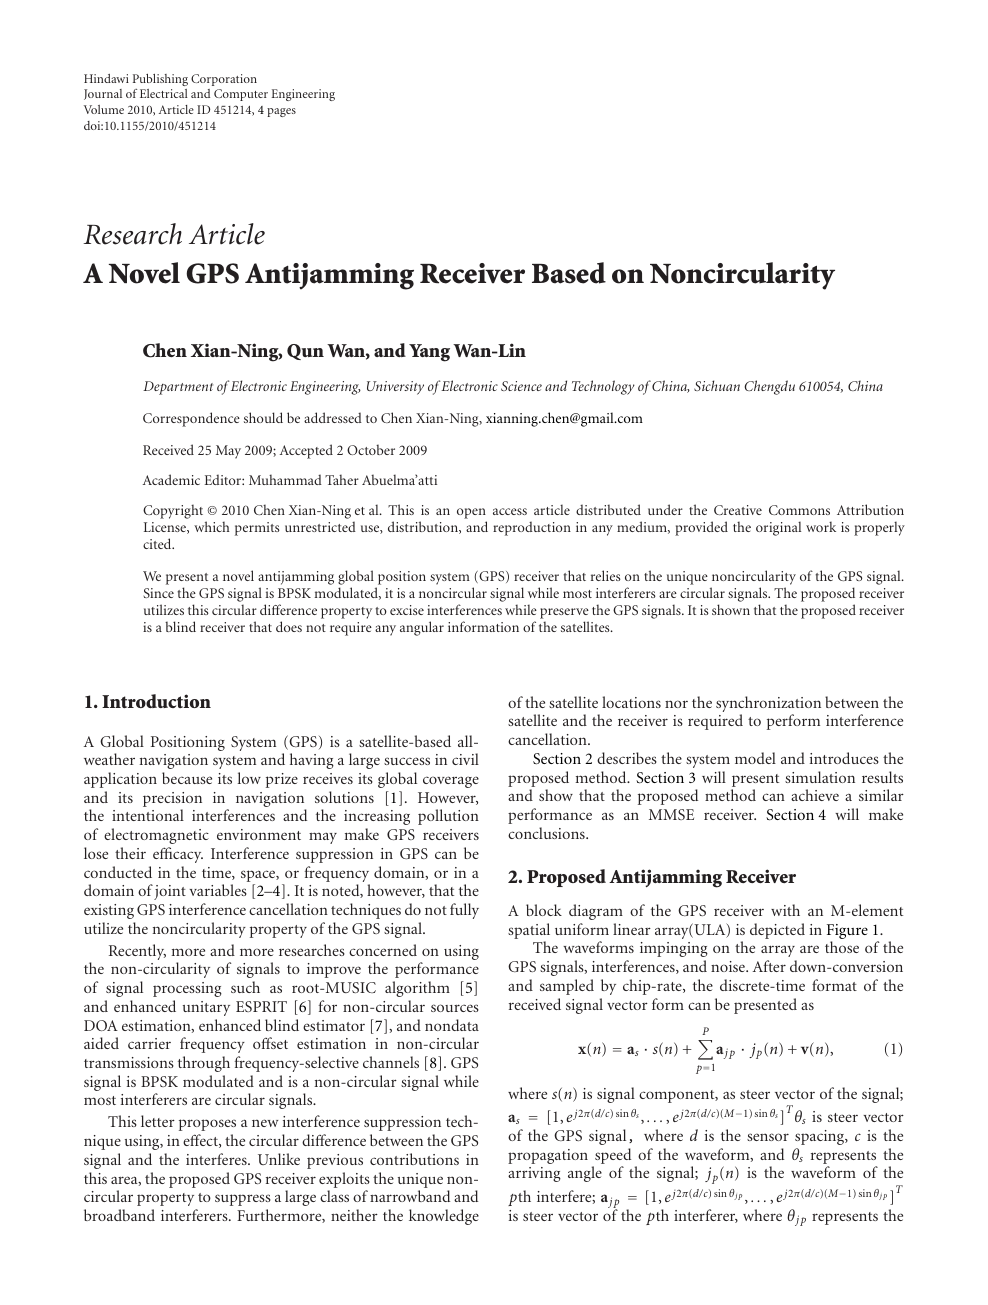 A Novel GPS Antijamming Receiver Based on Noncircularity